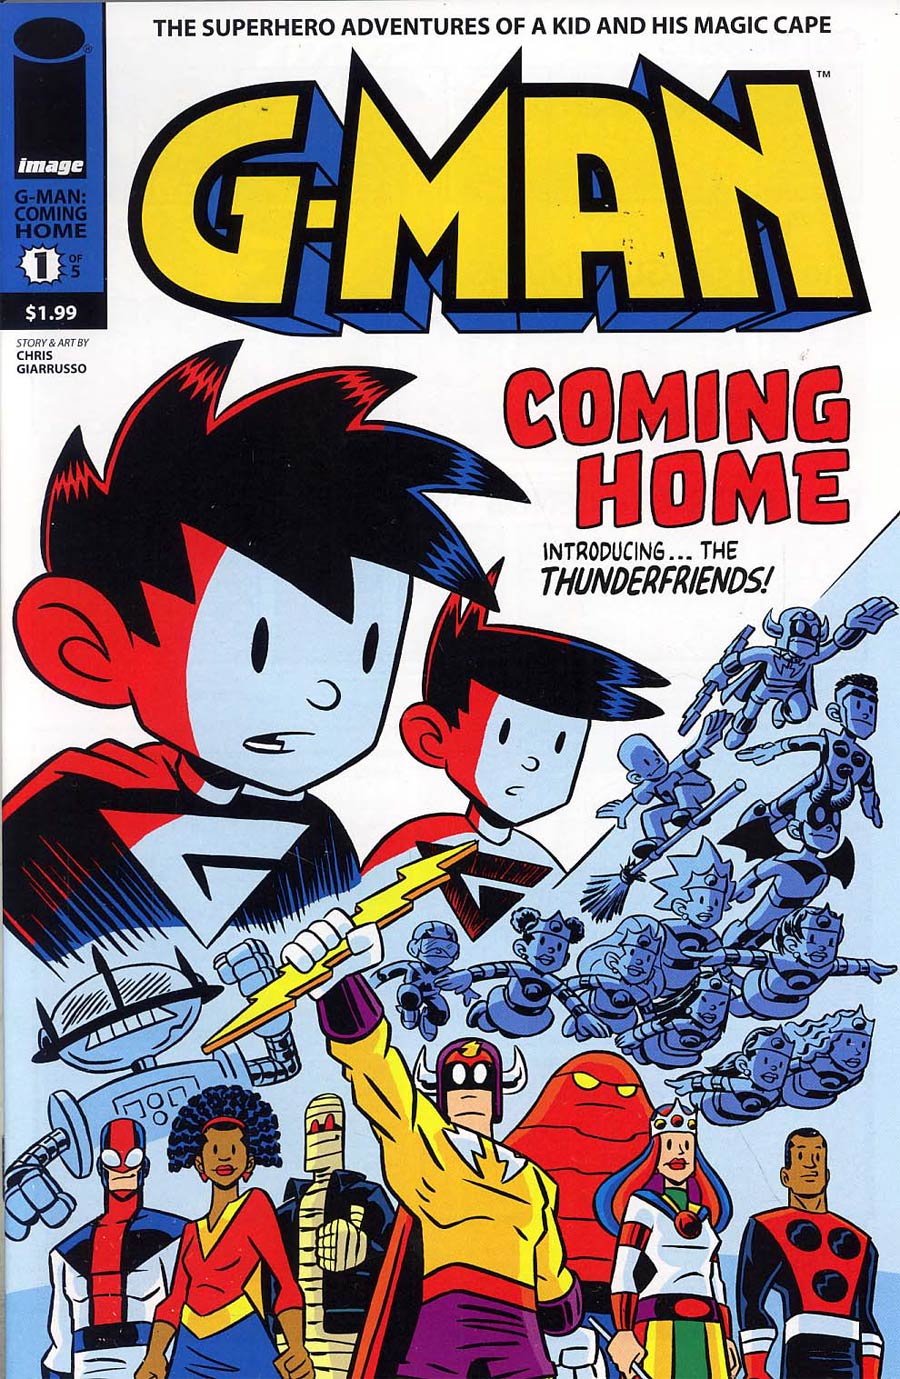 G-Man Coming Home #1 Cover A Regular cover